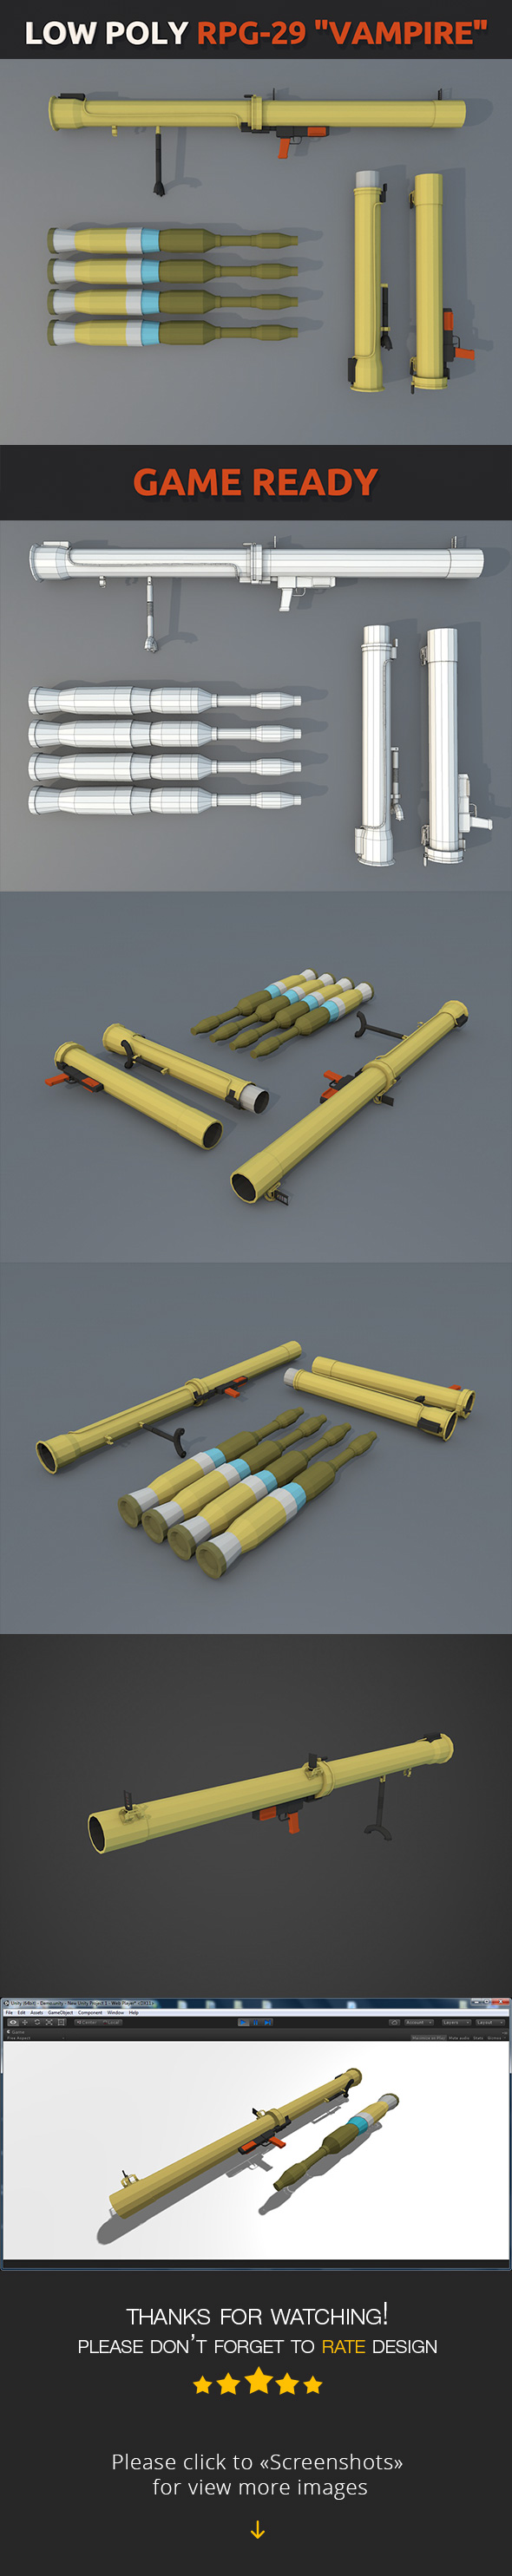 "Low Poly RPG-29 ""Vampire"" - 3DOcean Item for Sale"